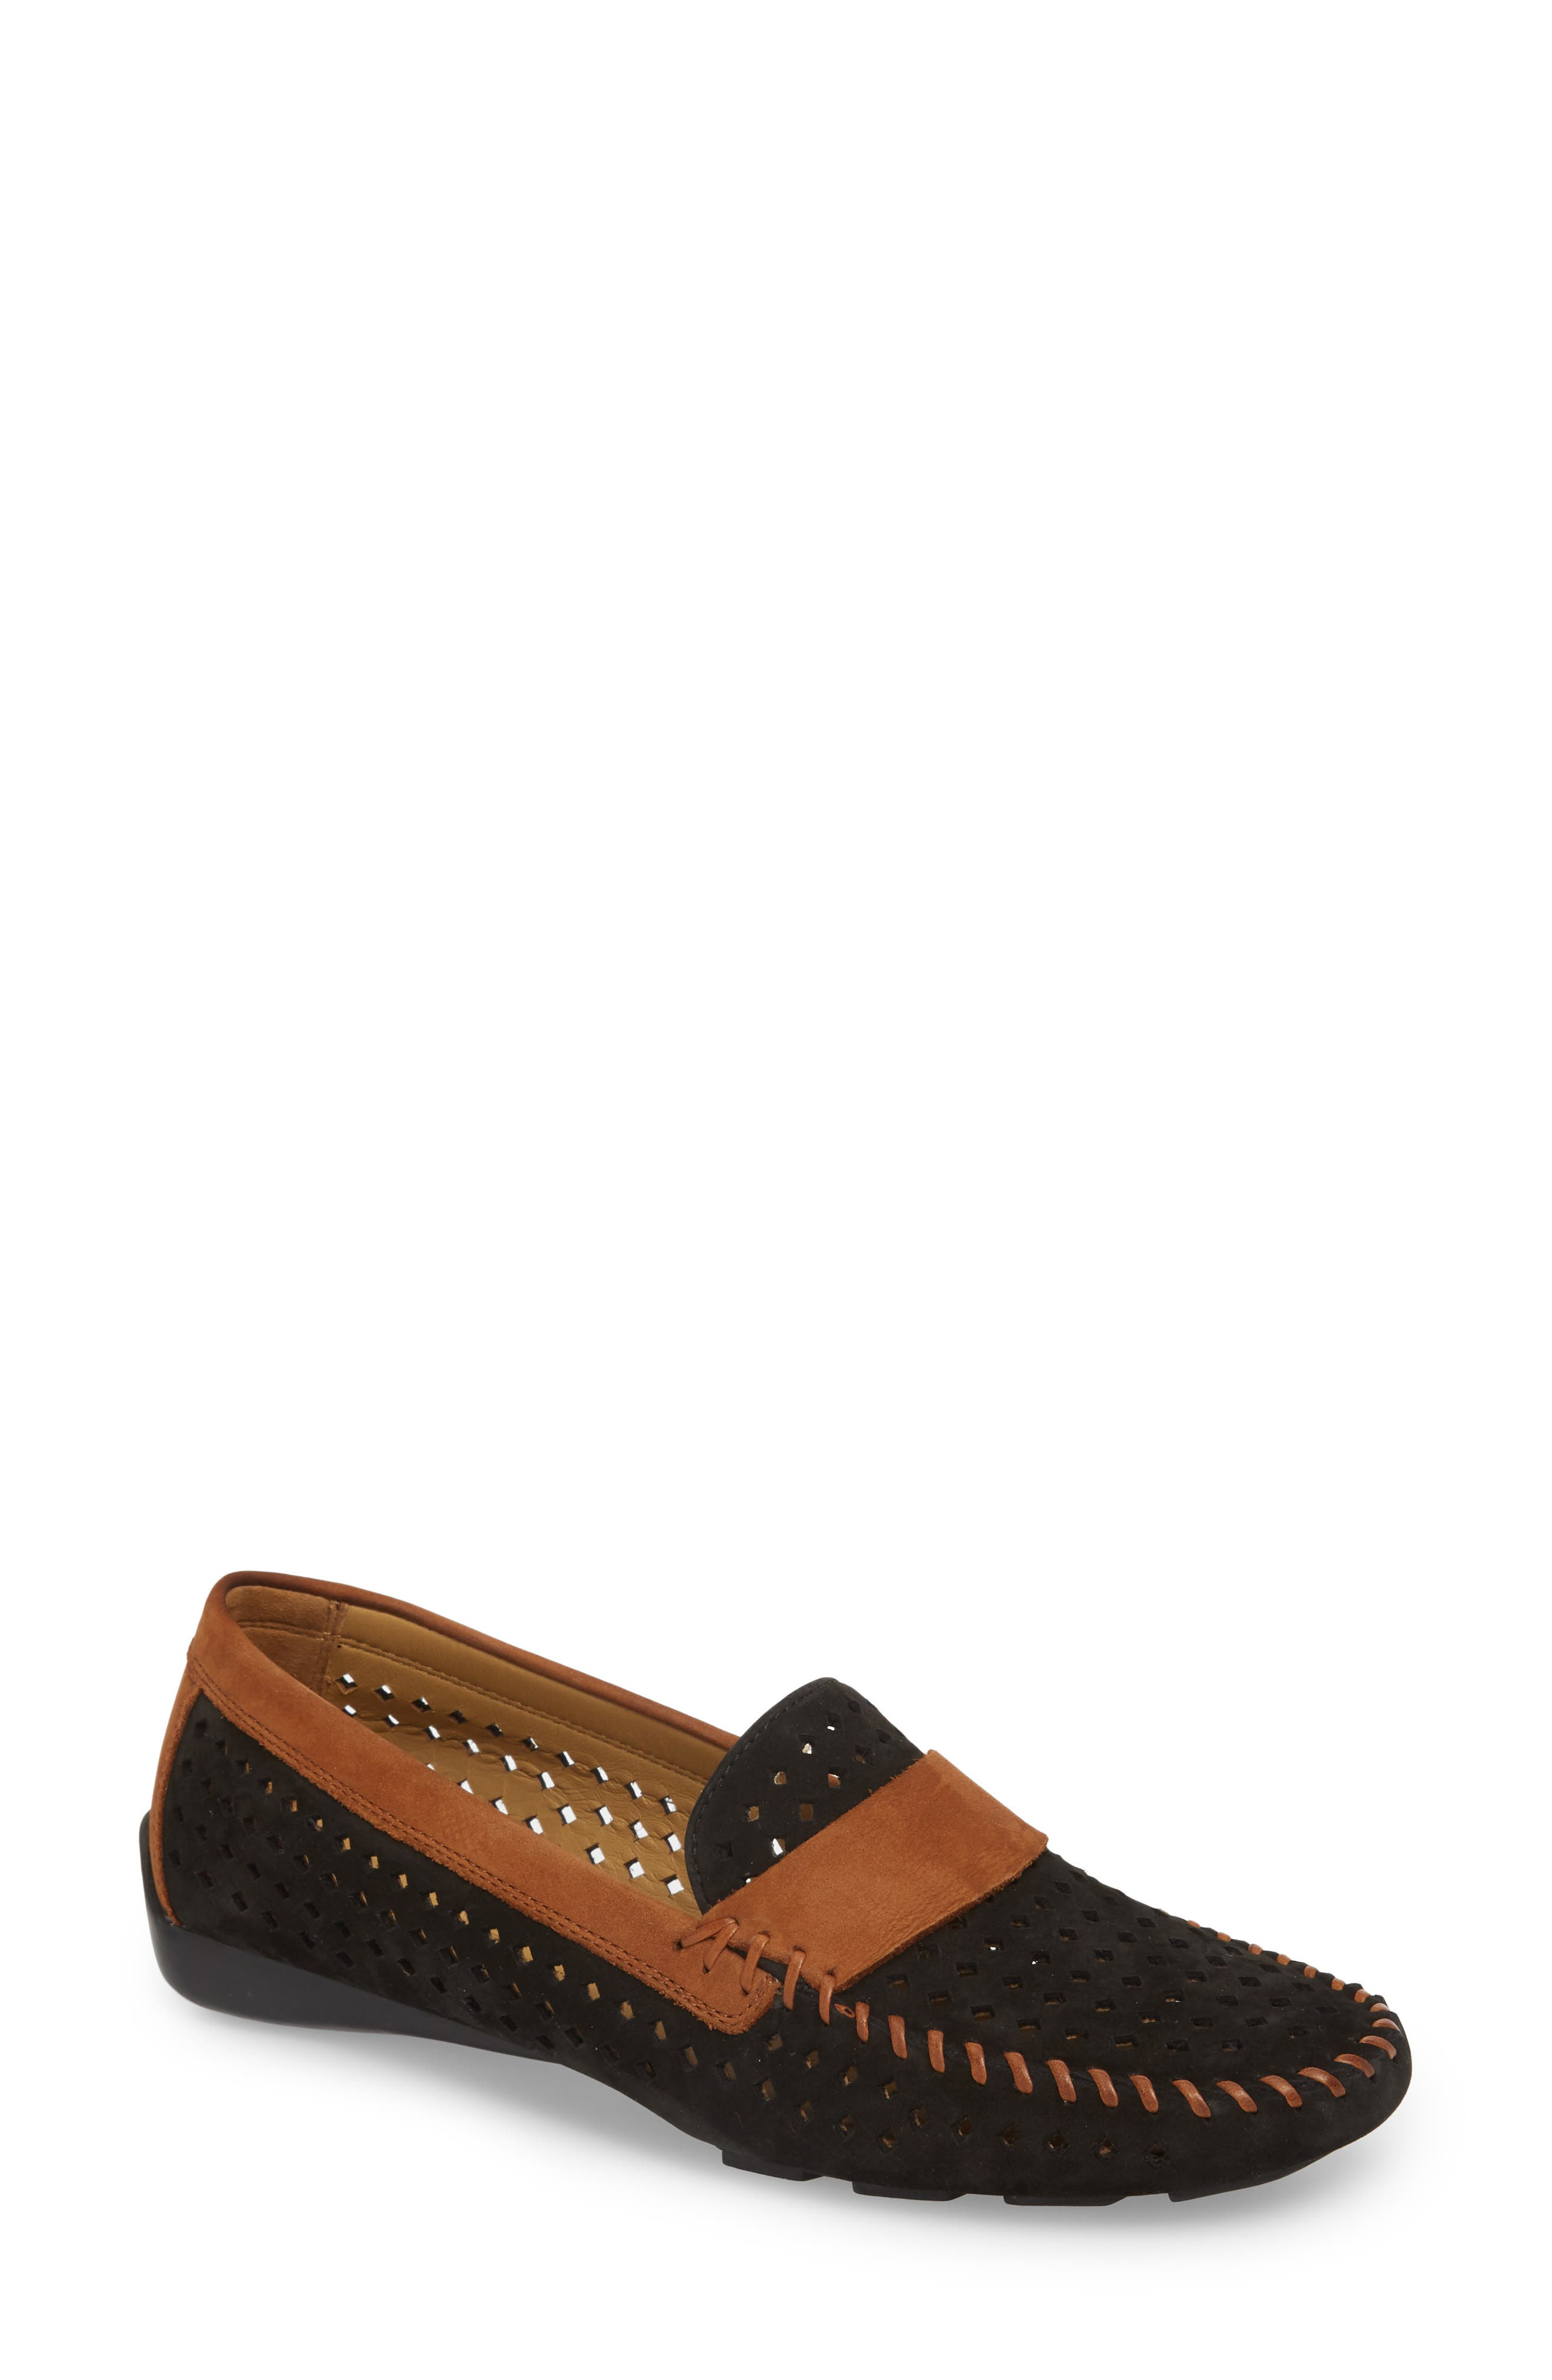 ROBERT ZUR Pace Loafer, Main, color, 002